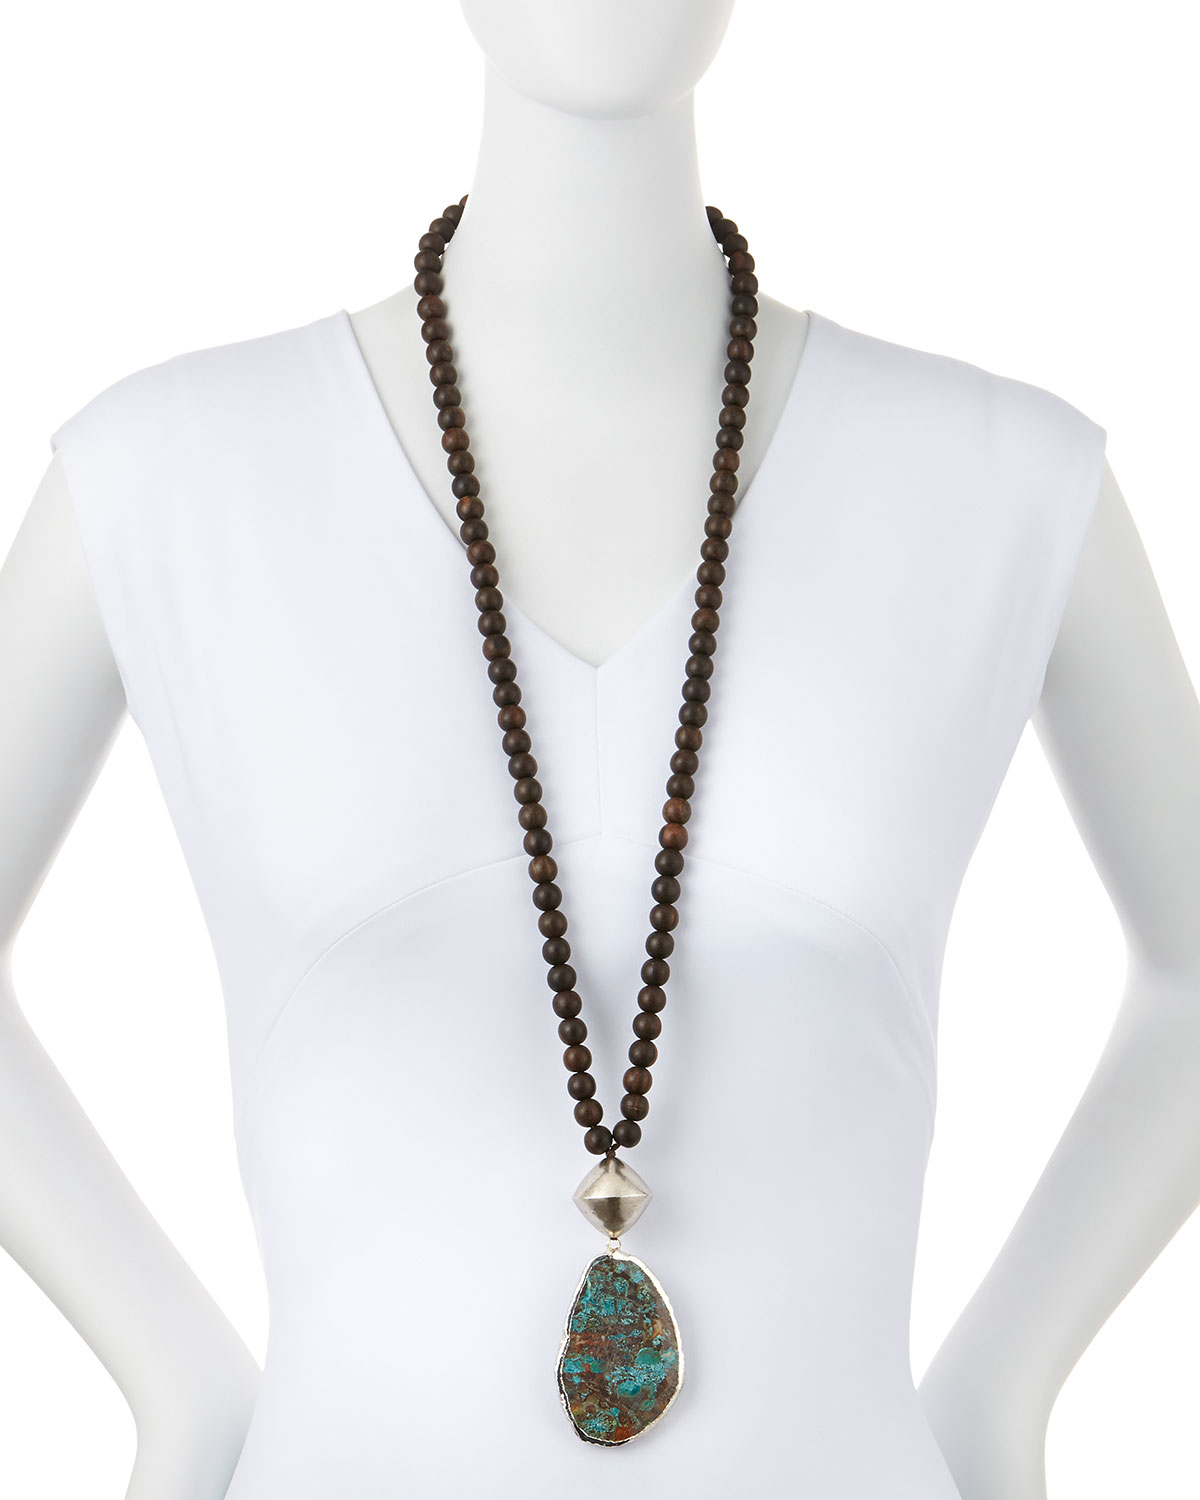 Nest Ebony Wood Long Beaded Necklace oz4R09g